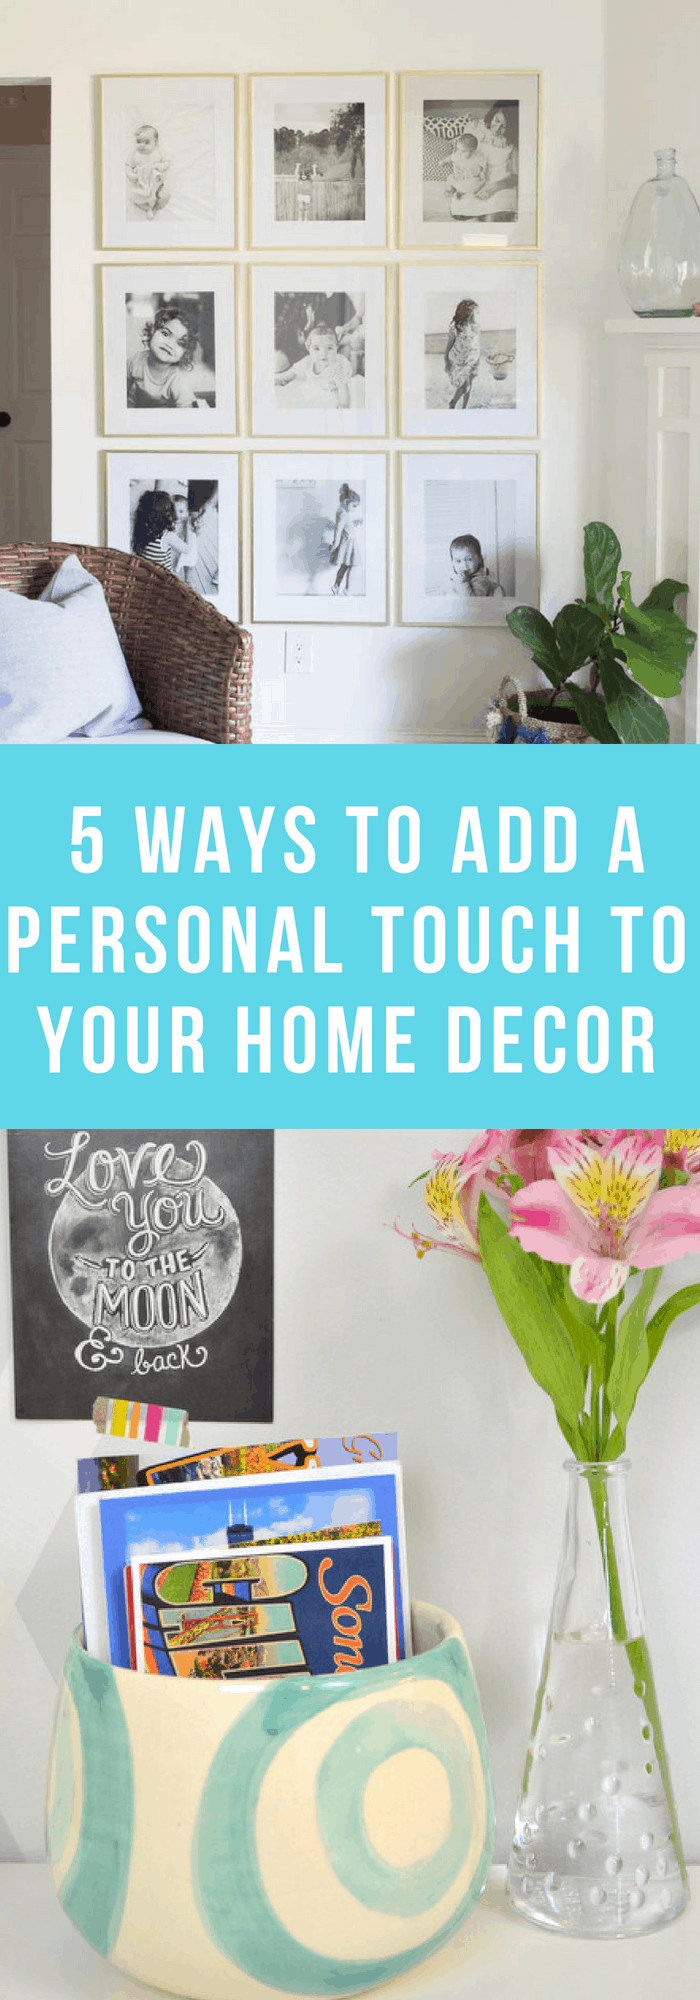 Home Decor--5 Ways to Add a Personal Touch to Your Home Decor--The Organized Mom